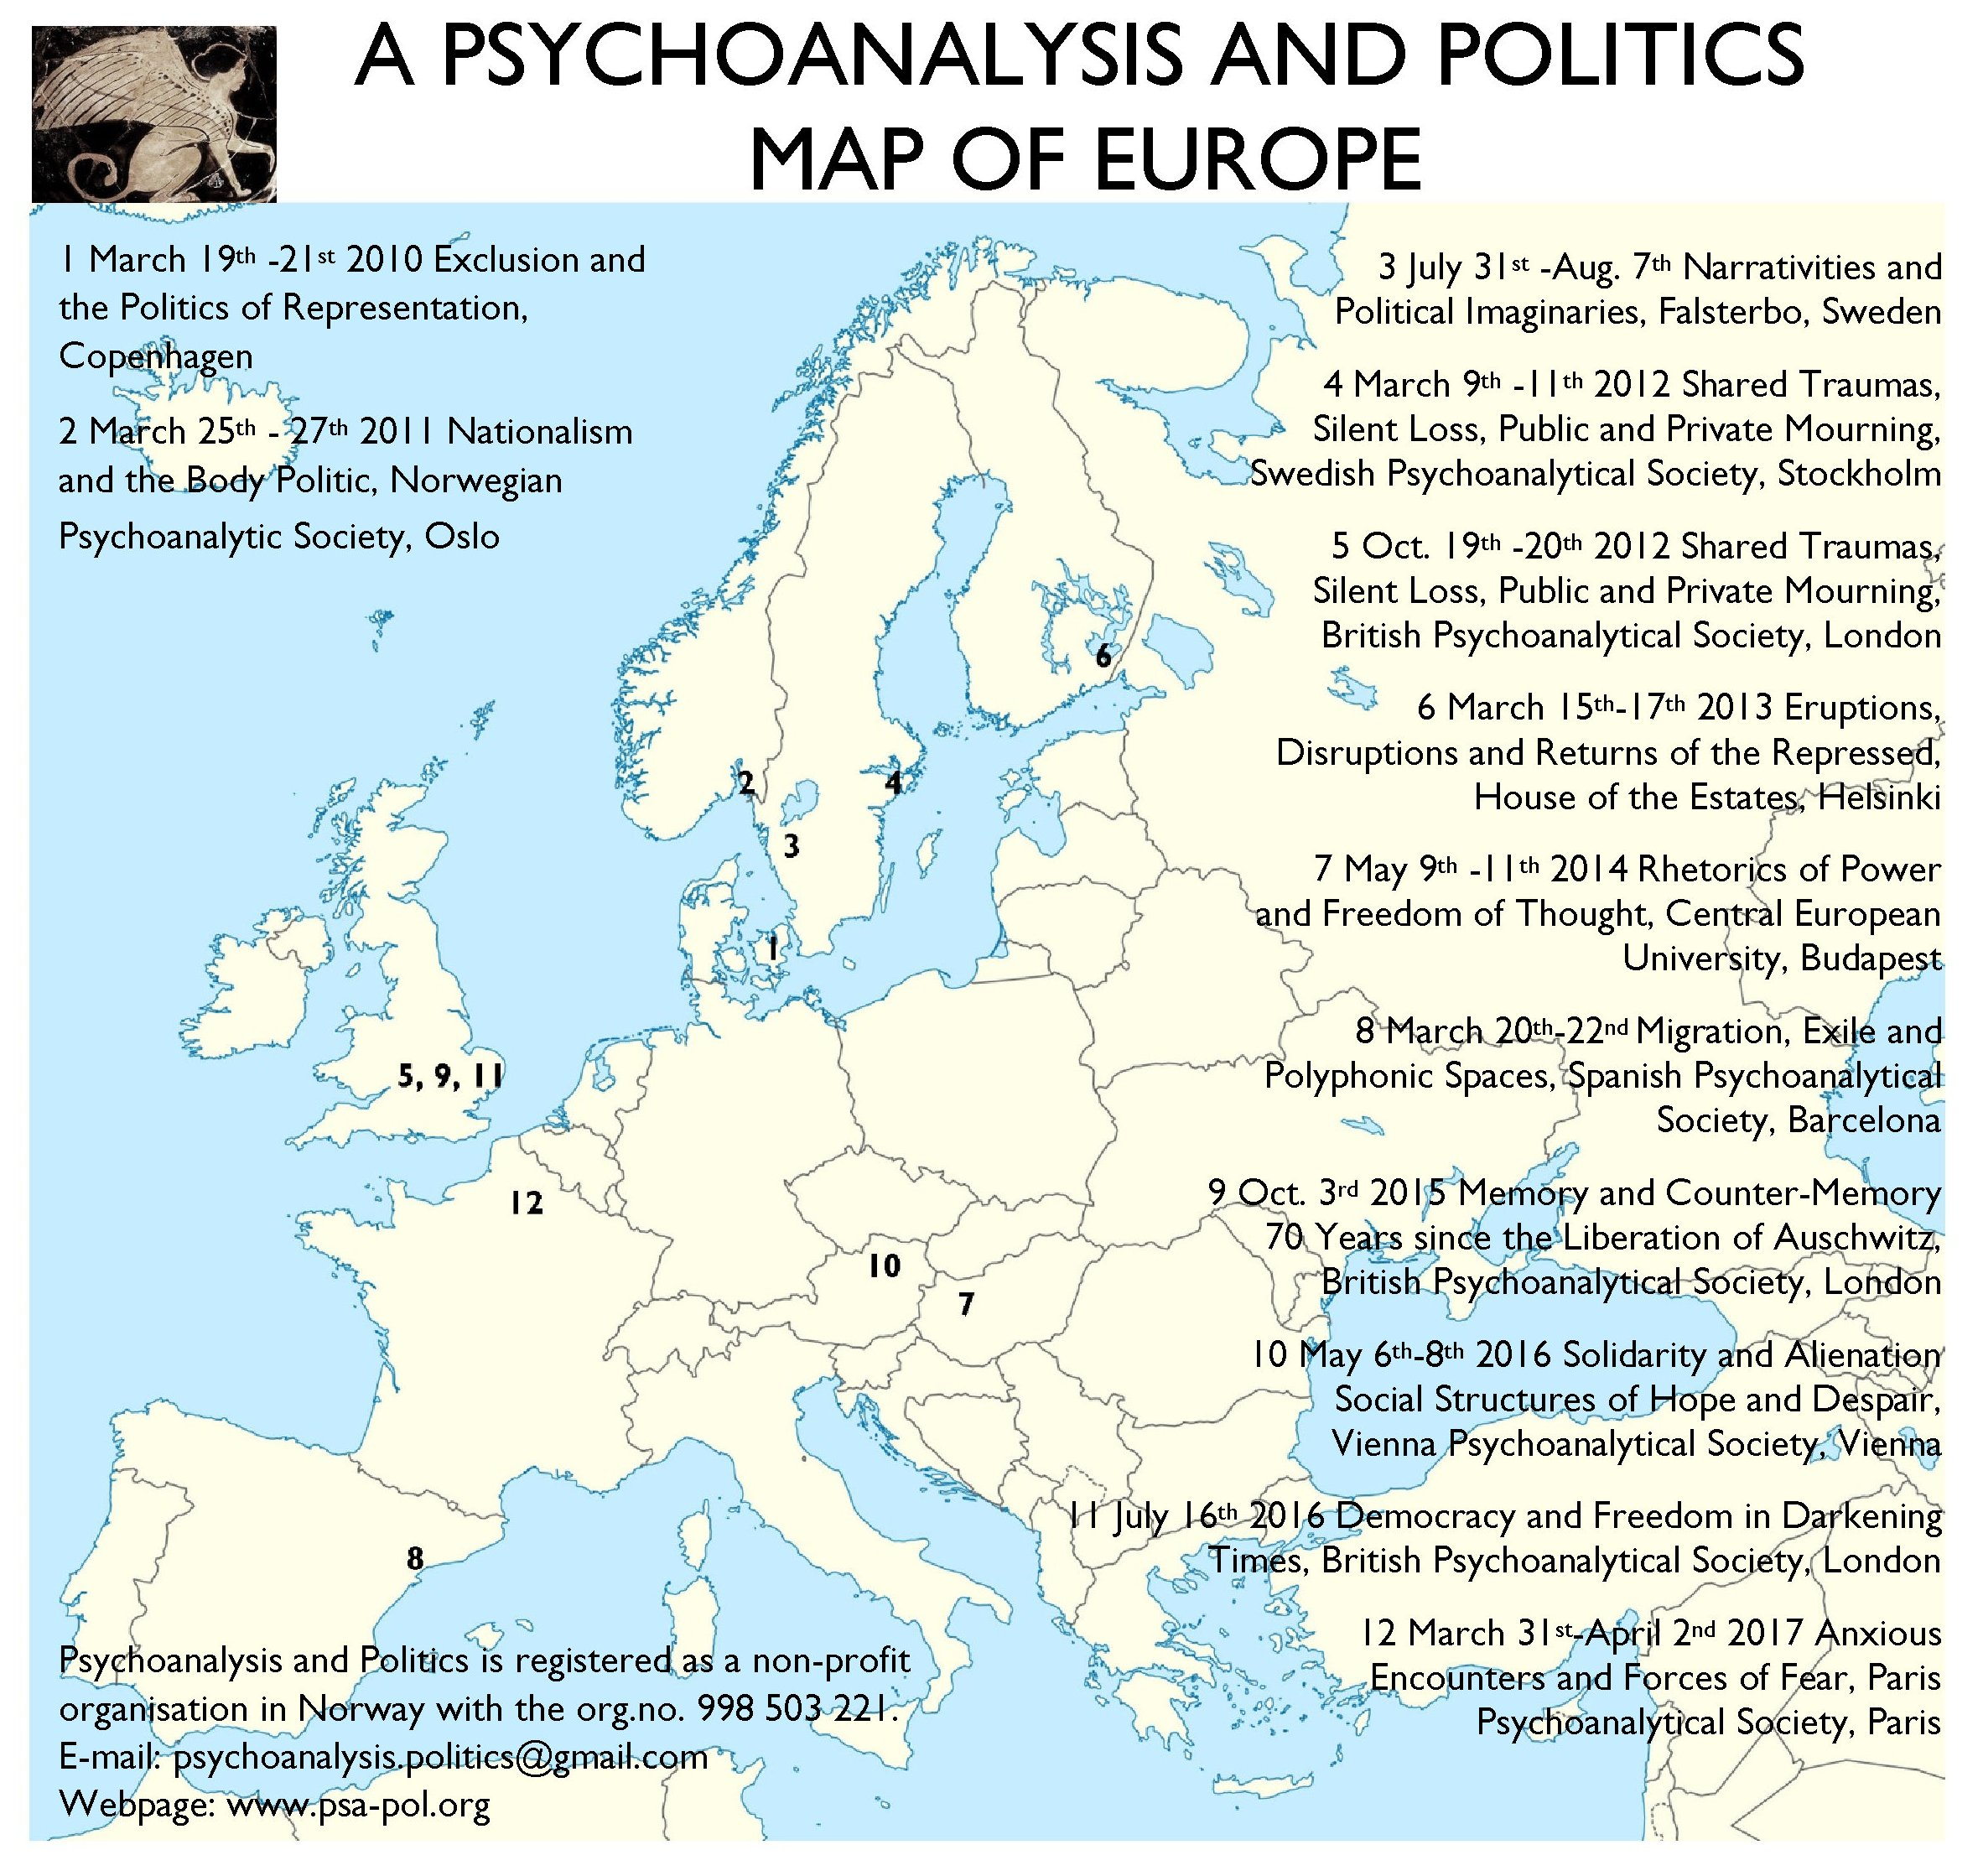 A PSYCHOANALYSIS AND POLITICS